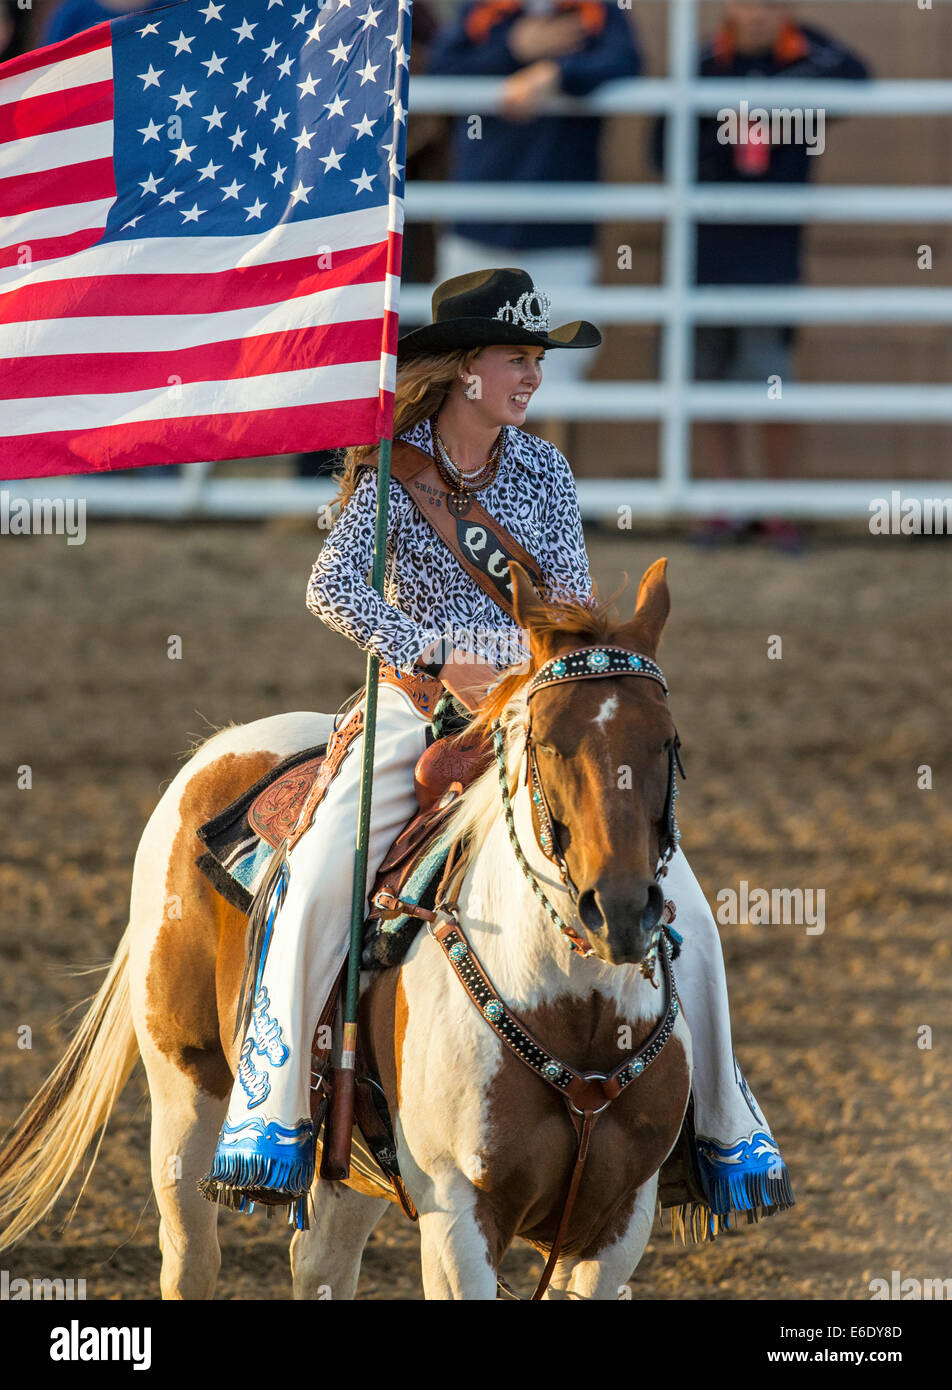 Rodeo Reine exerçant son drapeau américain à cheval pendant l'hymne national, Chaffee County Photo Stock